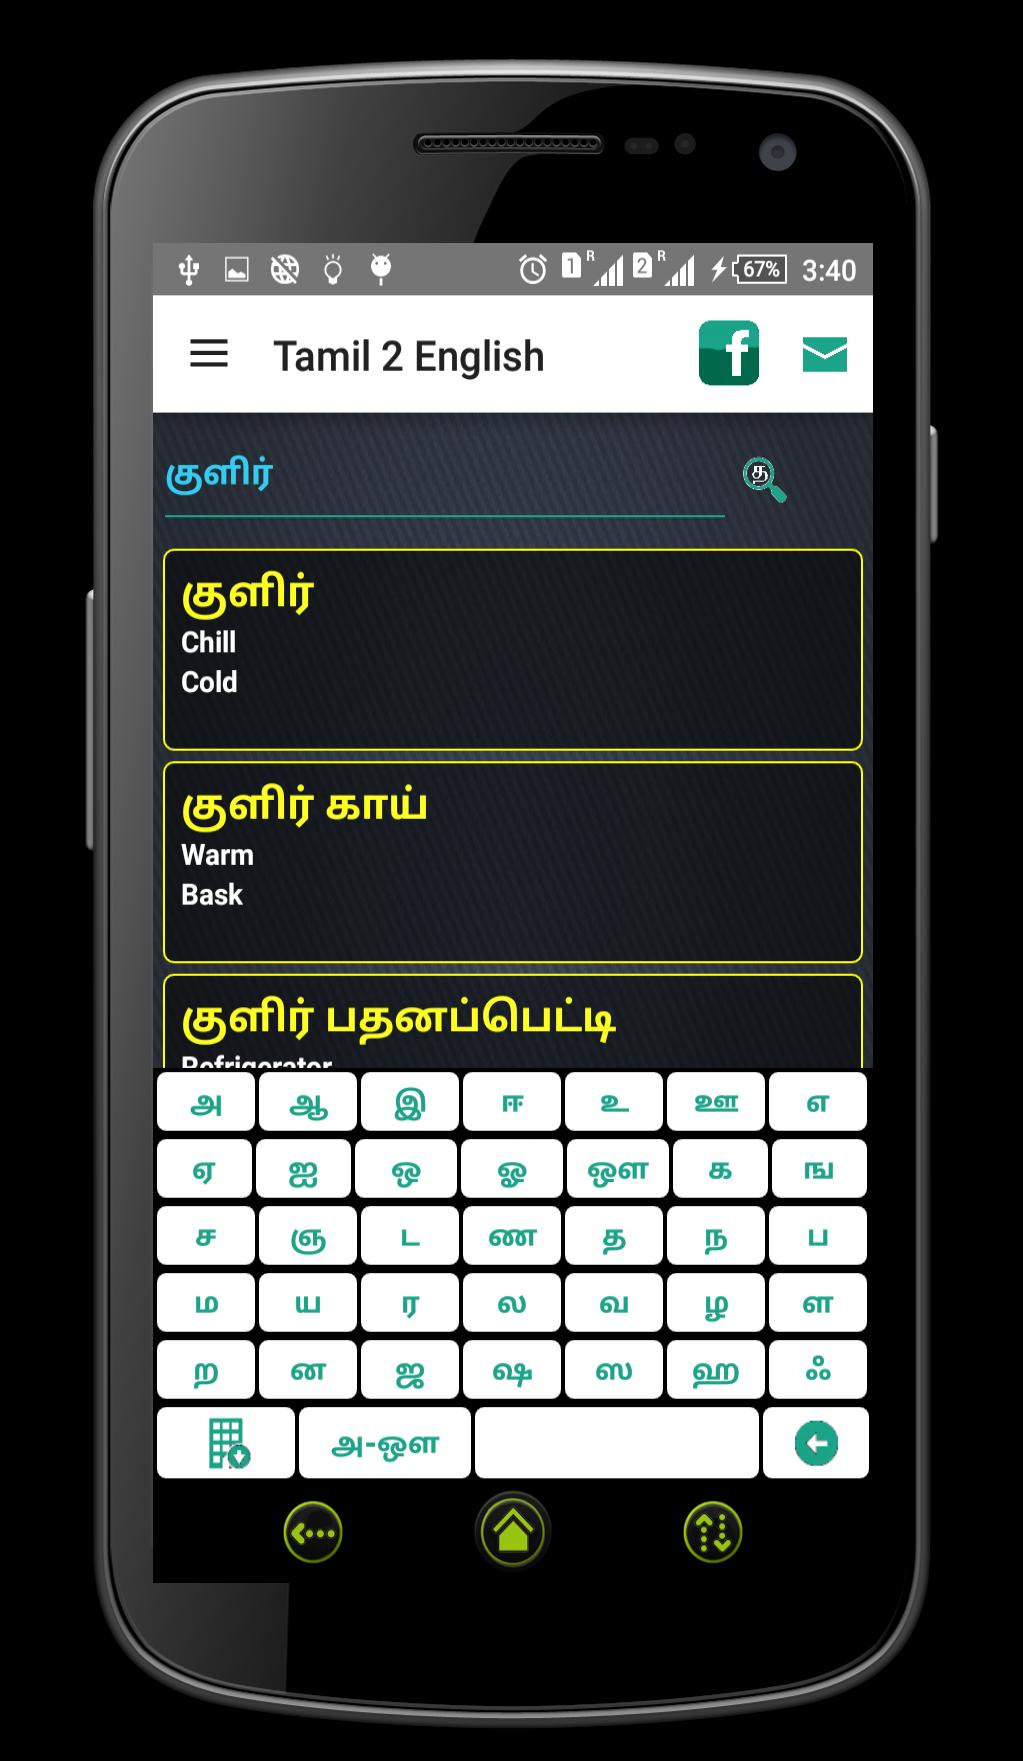 Tamil English Dictionary for Android - APK Download